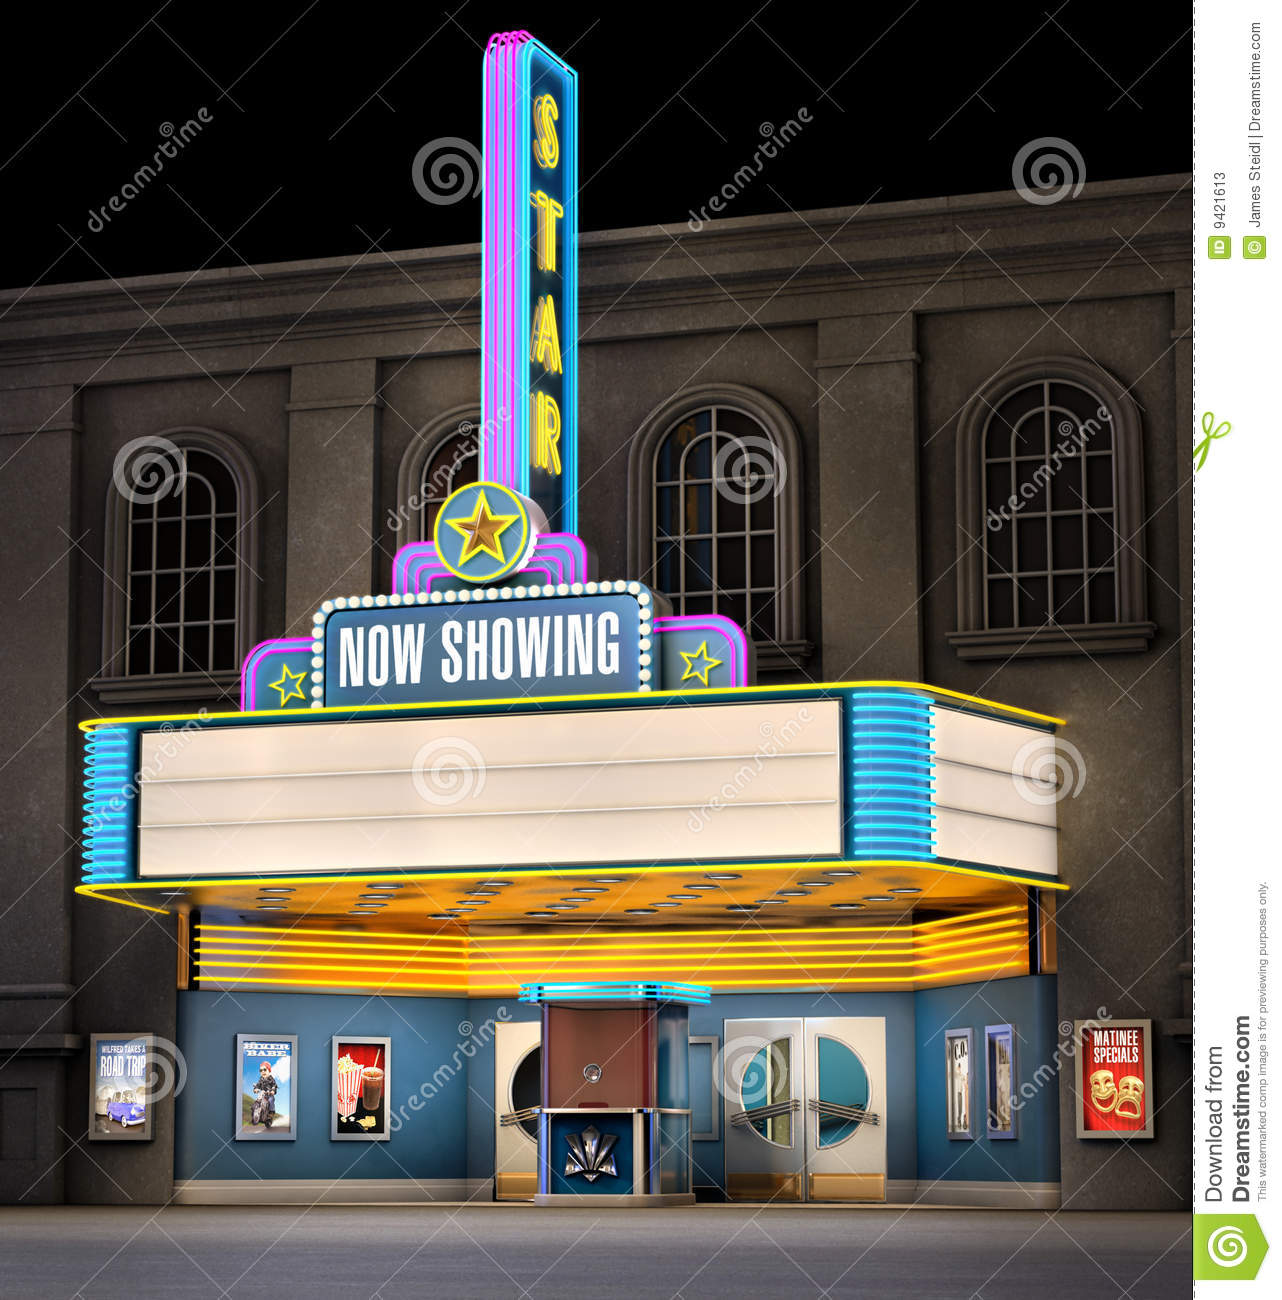 Free Download Film Box Office: Movie Theatre & Ticket Box Stock Illustration